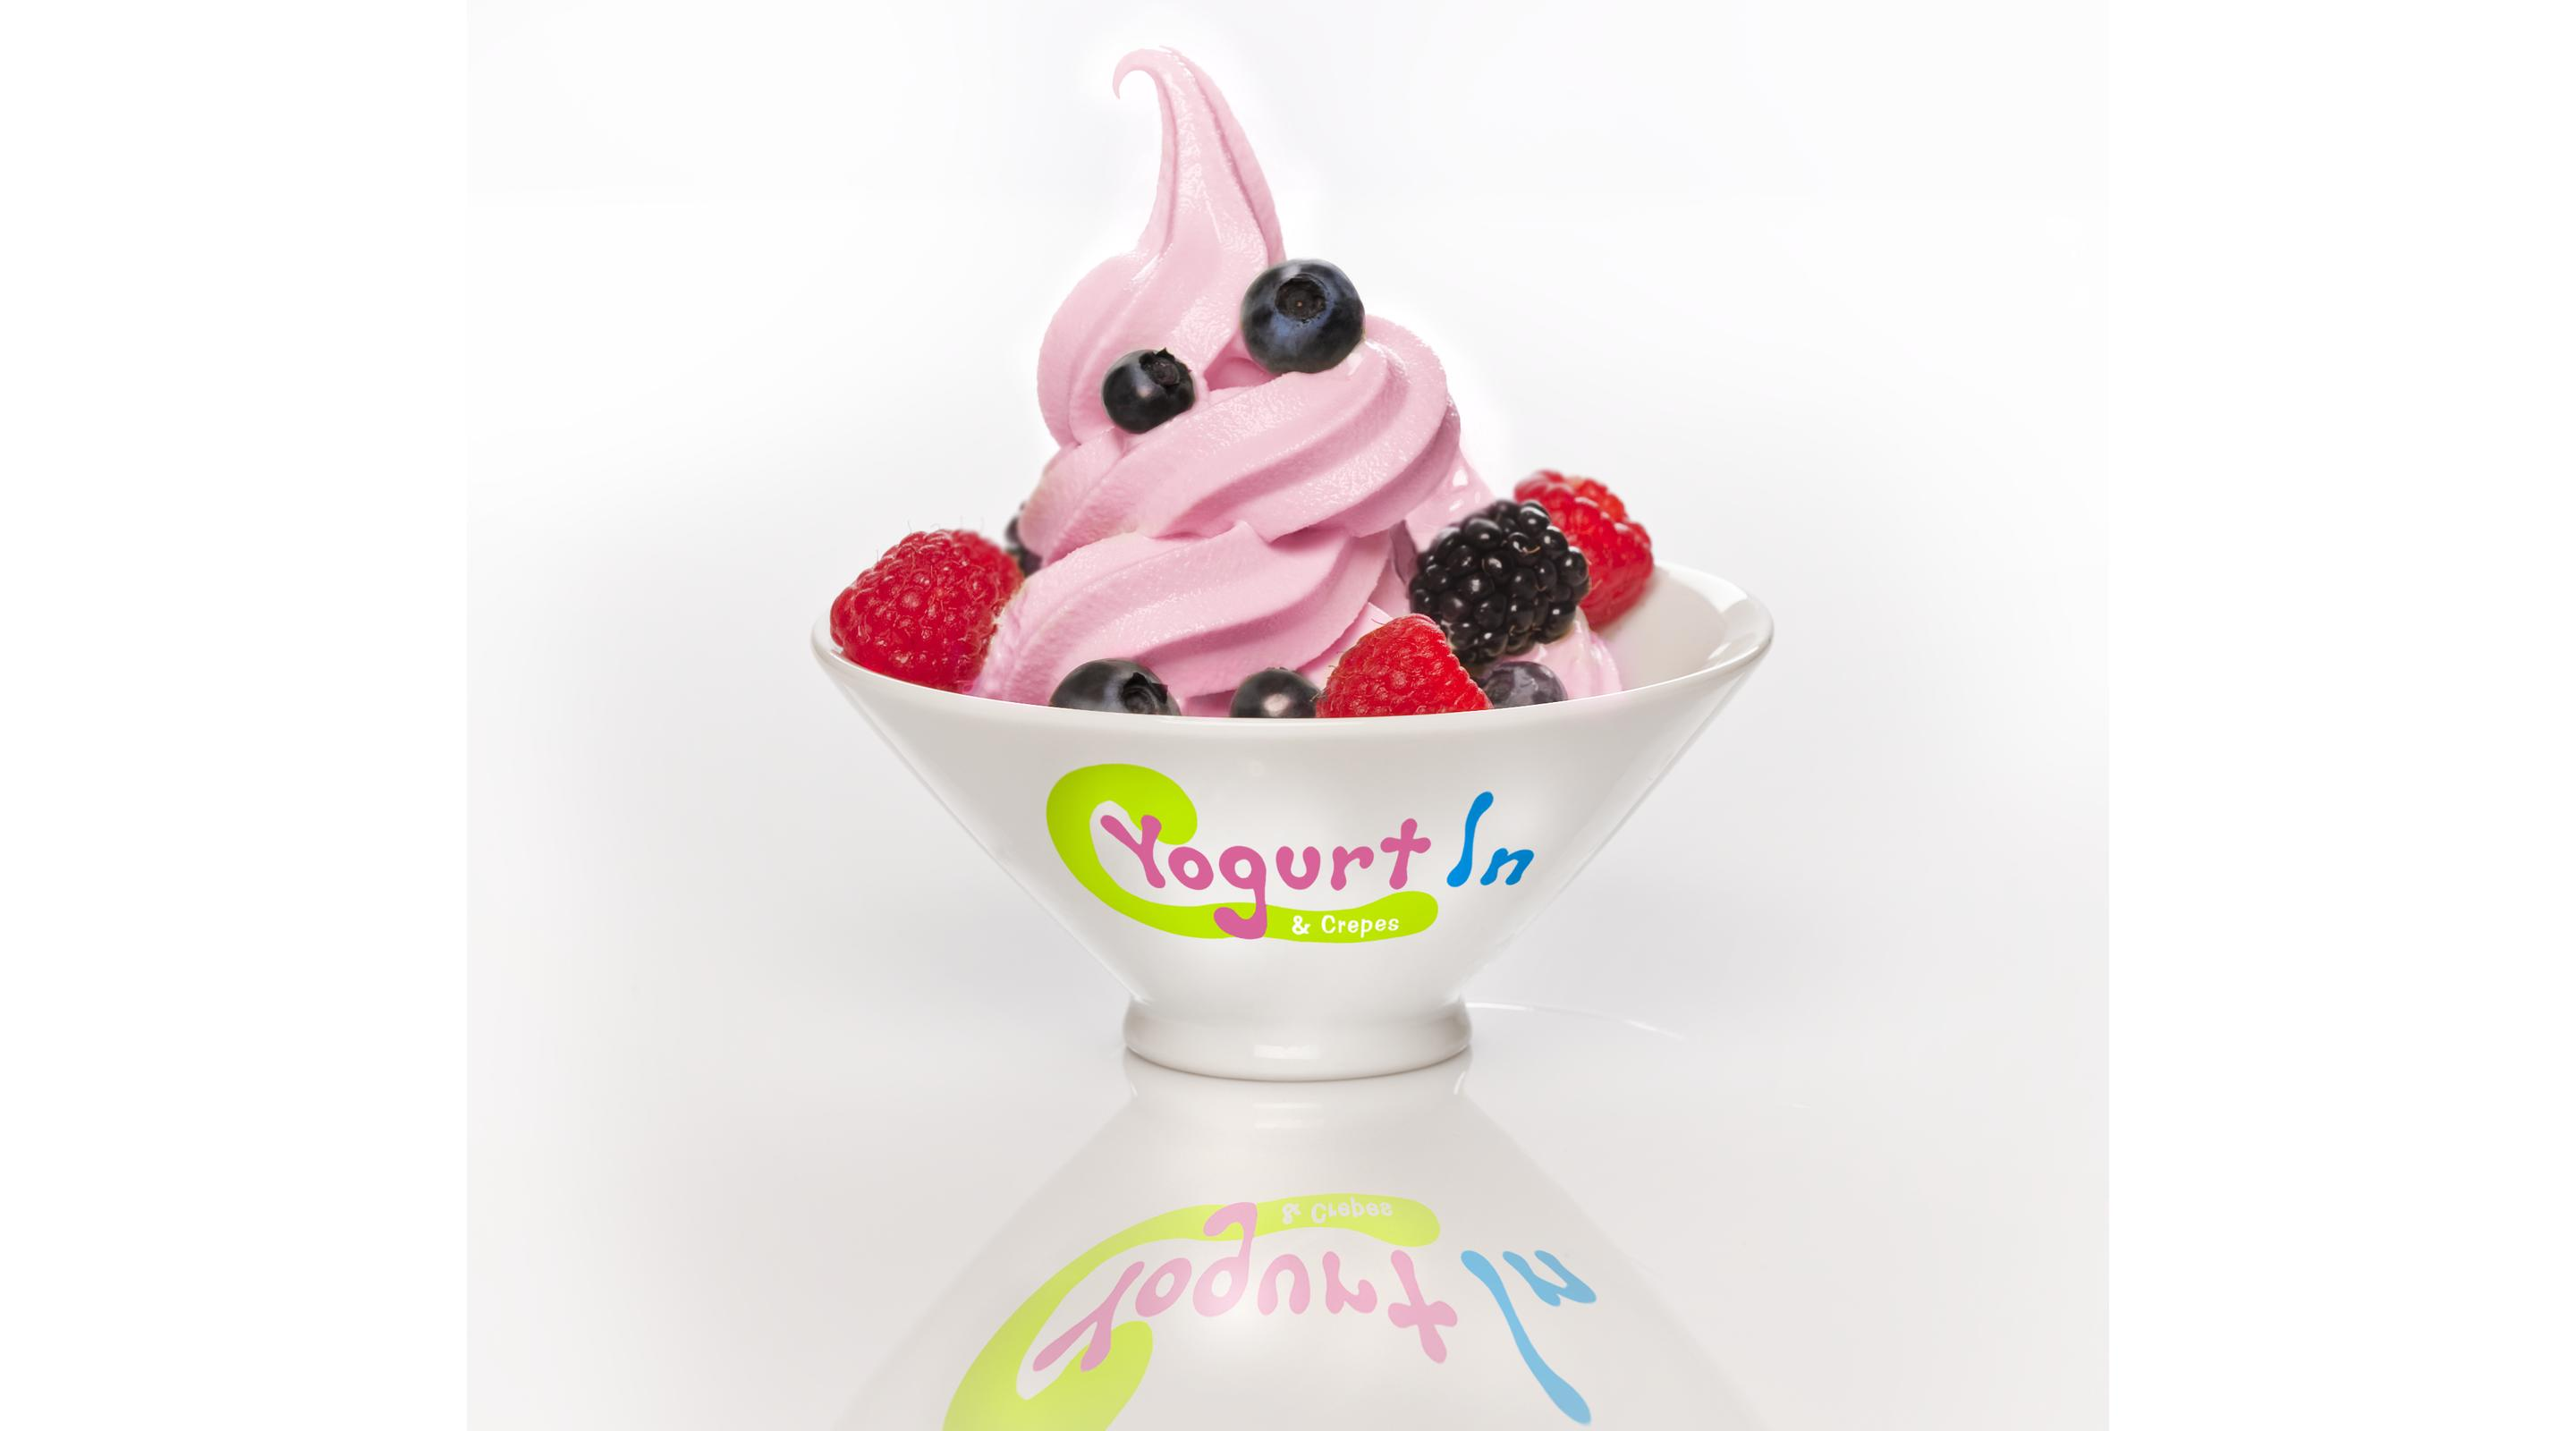 The Yogurt In is a yogurt place located at the Shoppes of Mandalay Bay.